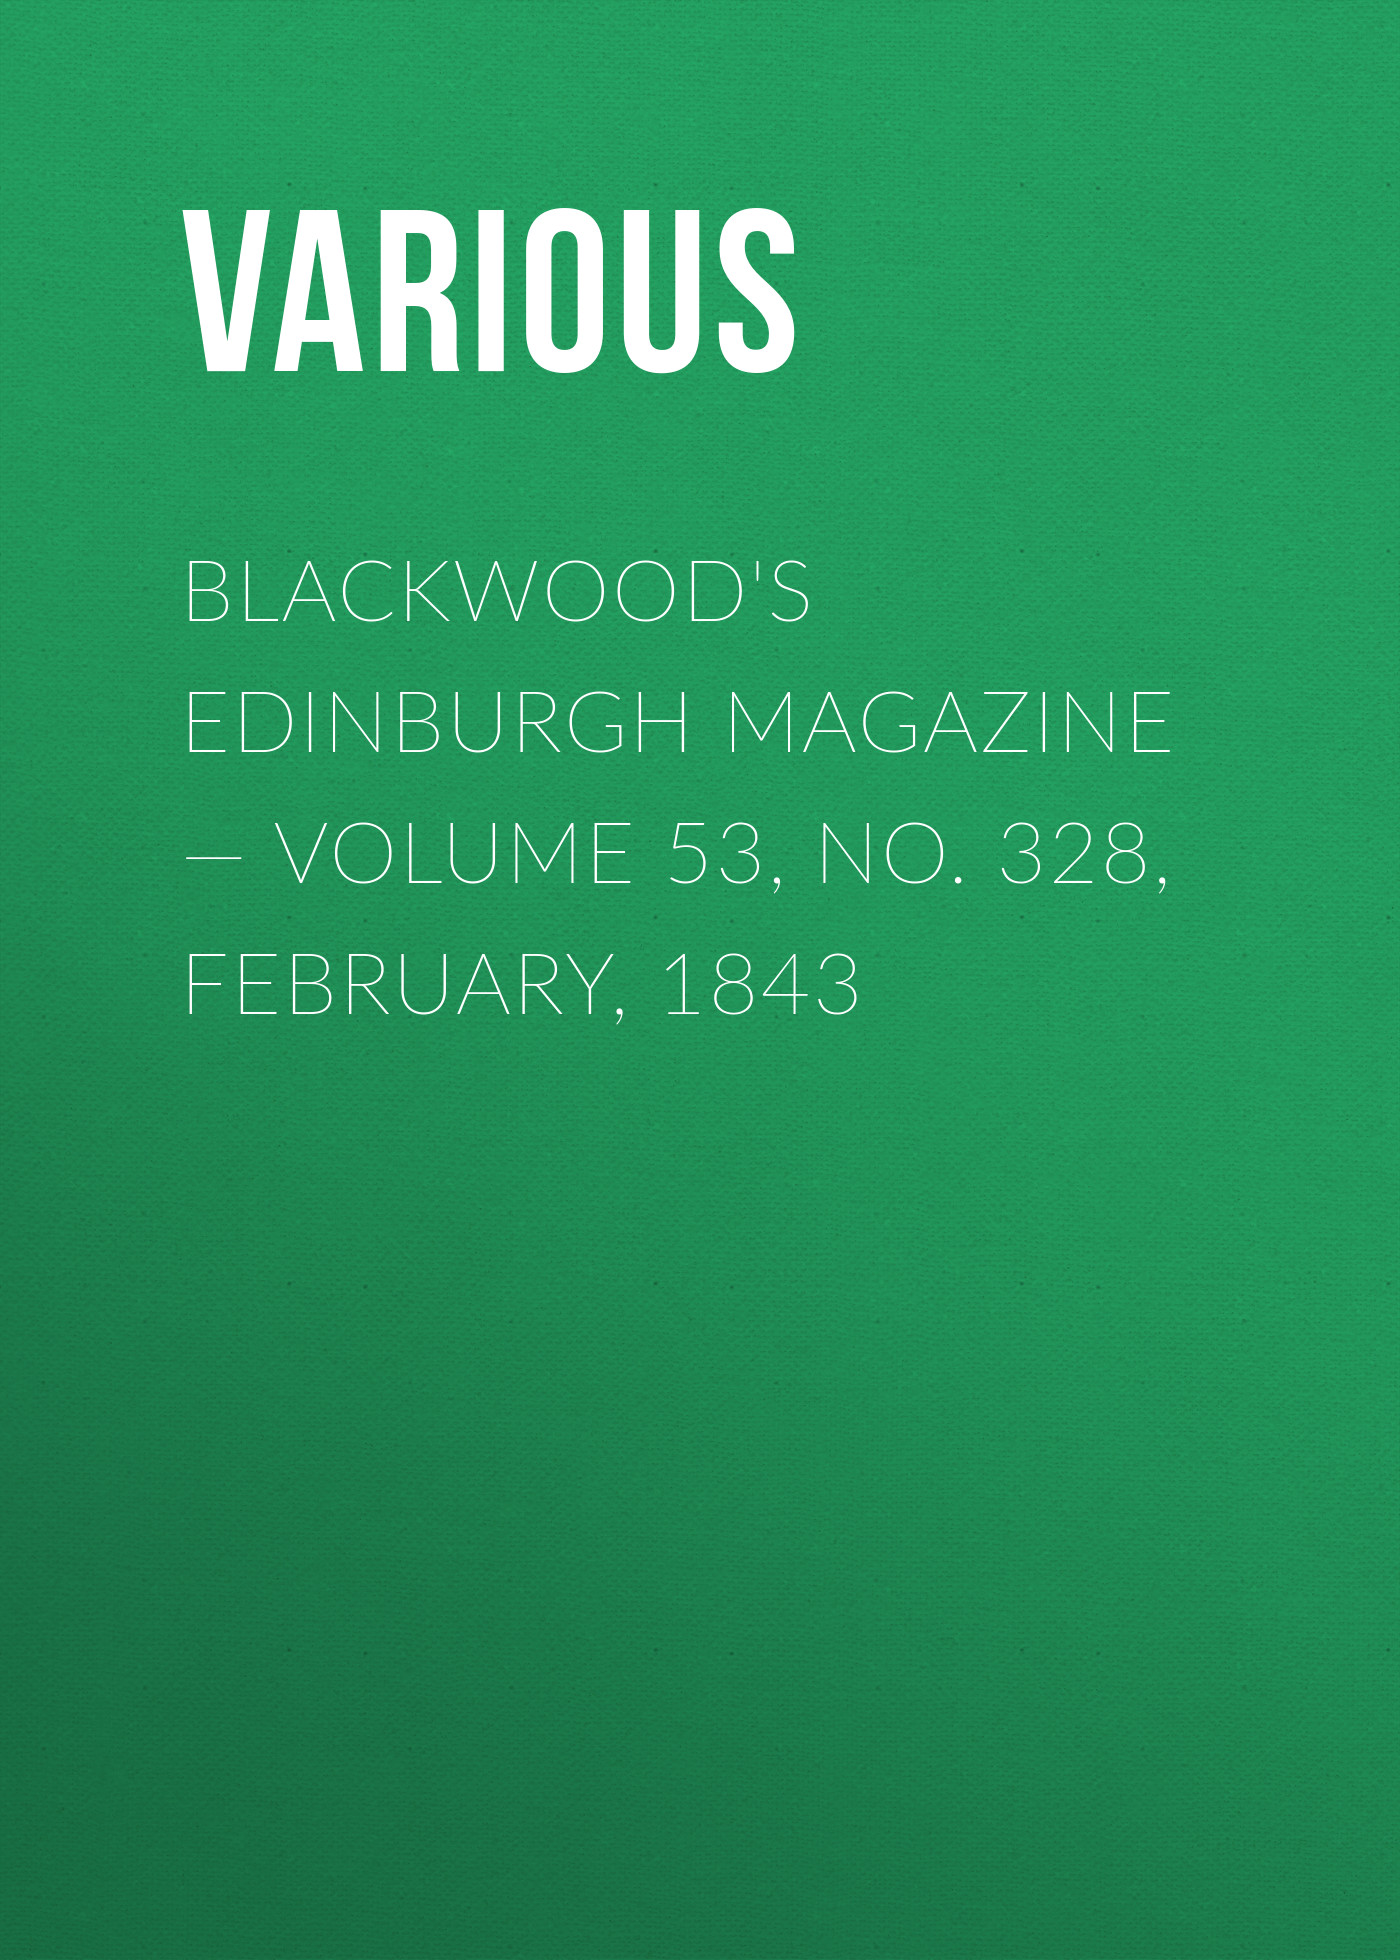 Blackwood\'s Edinburgh Magazine — Volume 53, No. 328, February, 1843 ( Various  )